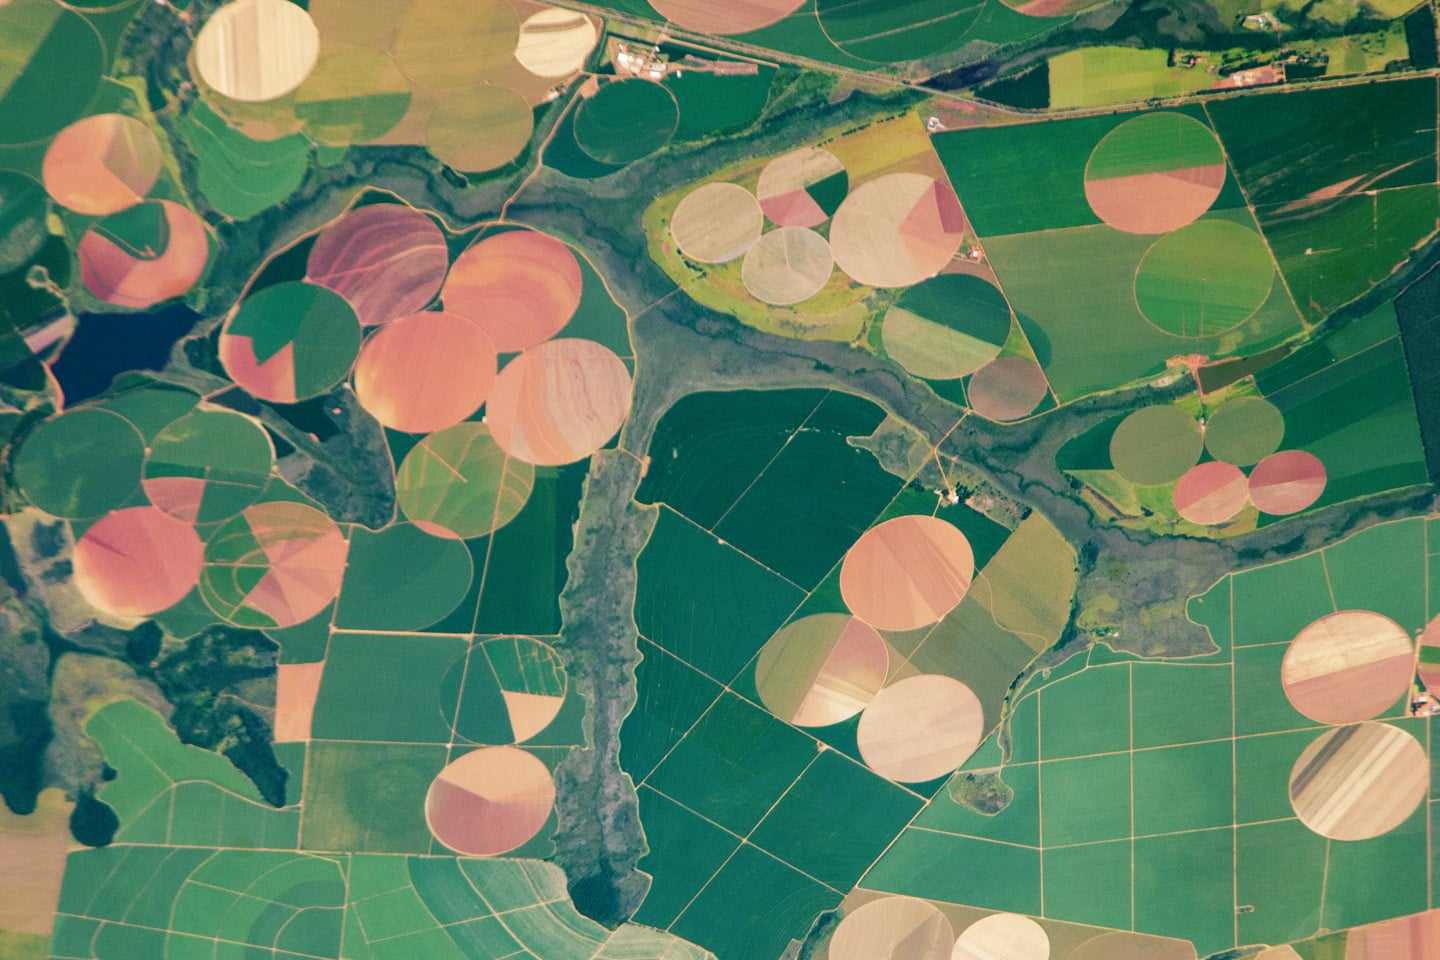 In 2011, this photo was taken from the International Space Station, giving us a unique look at the agricultural landscape in the western part of the Minas Gerais state in Brazil.  Source: Expedition 26 Crew/NASA